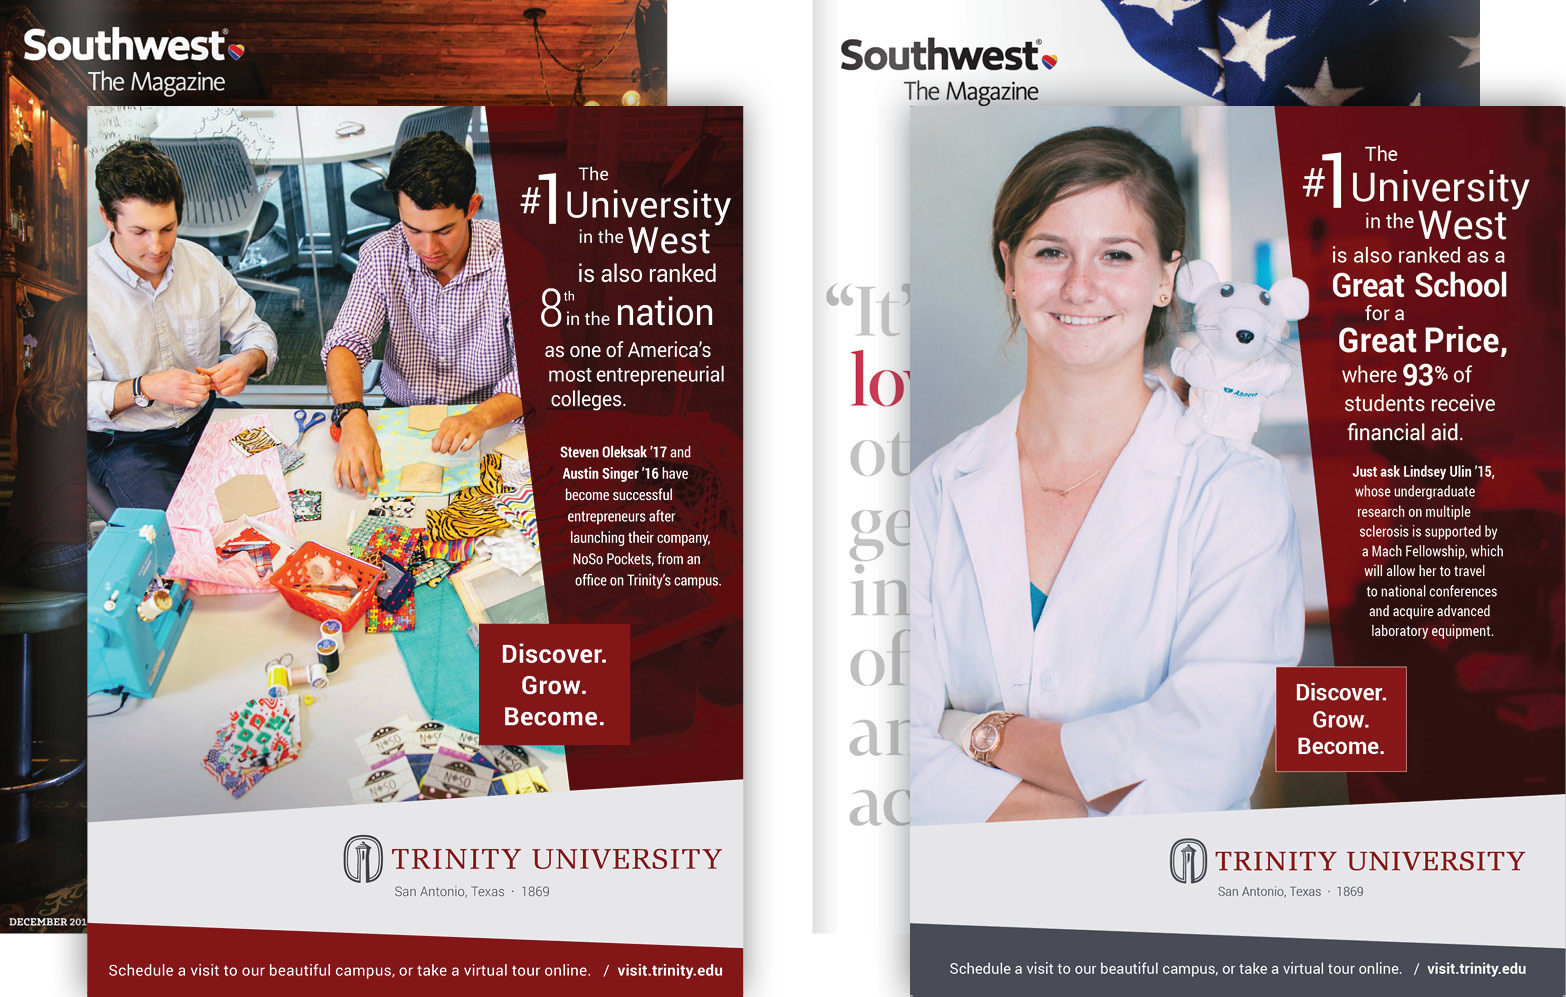 Trinity University Ads - Southwest Airlines Magazine